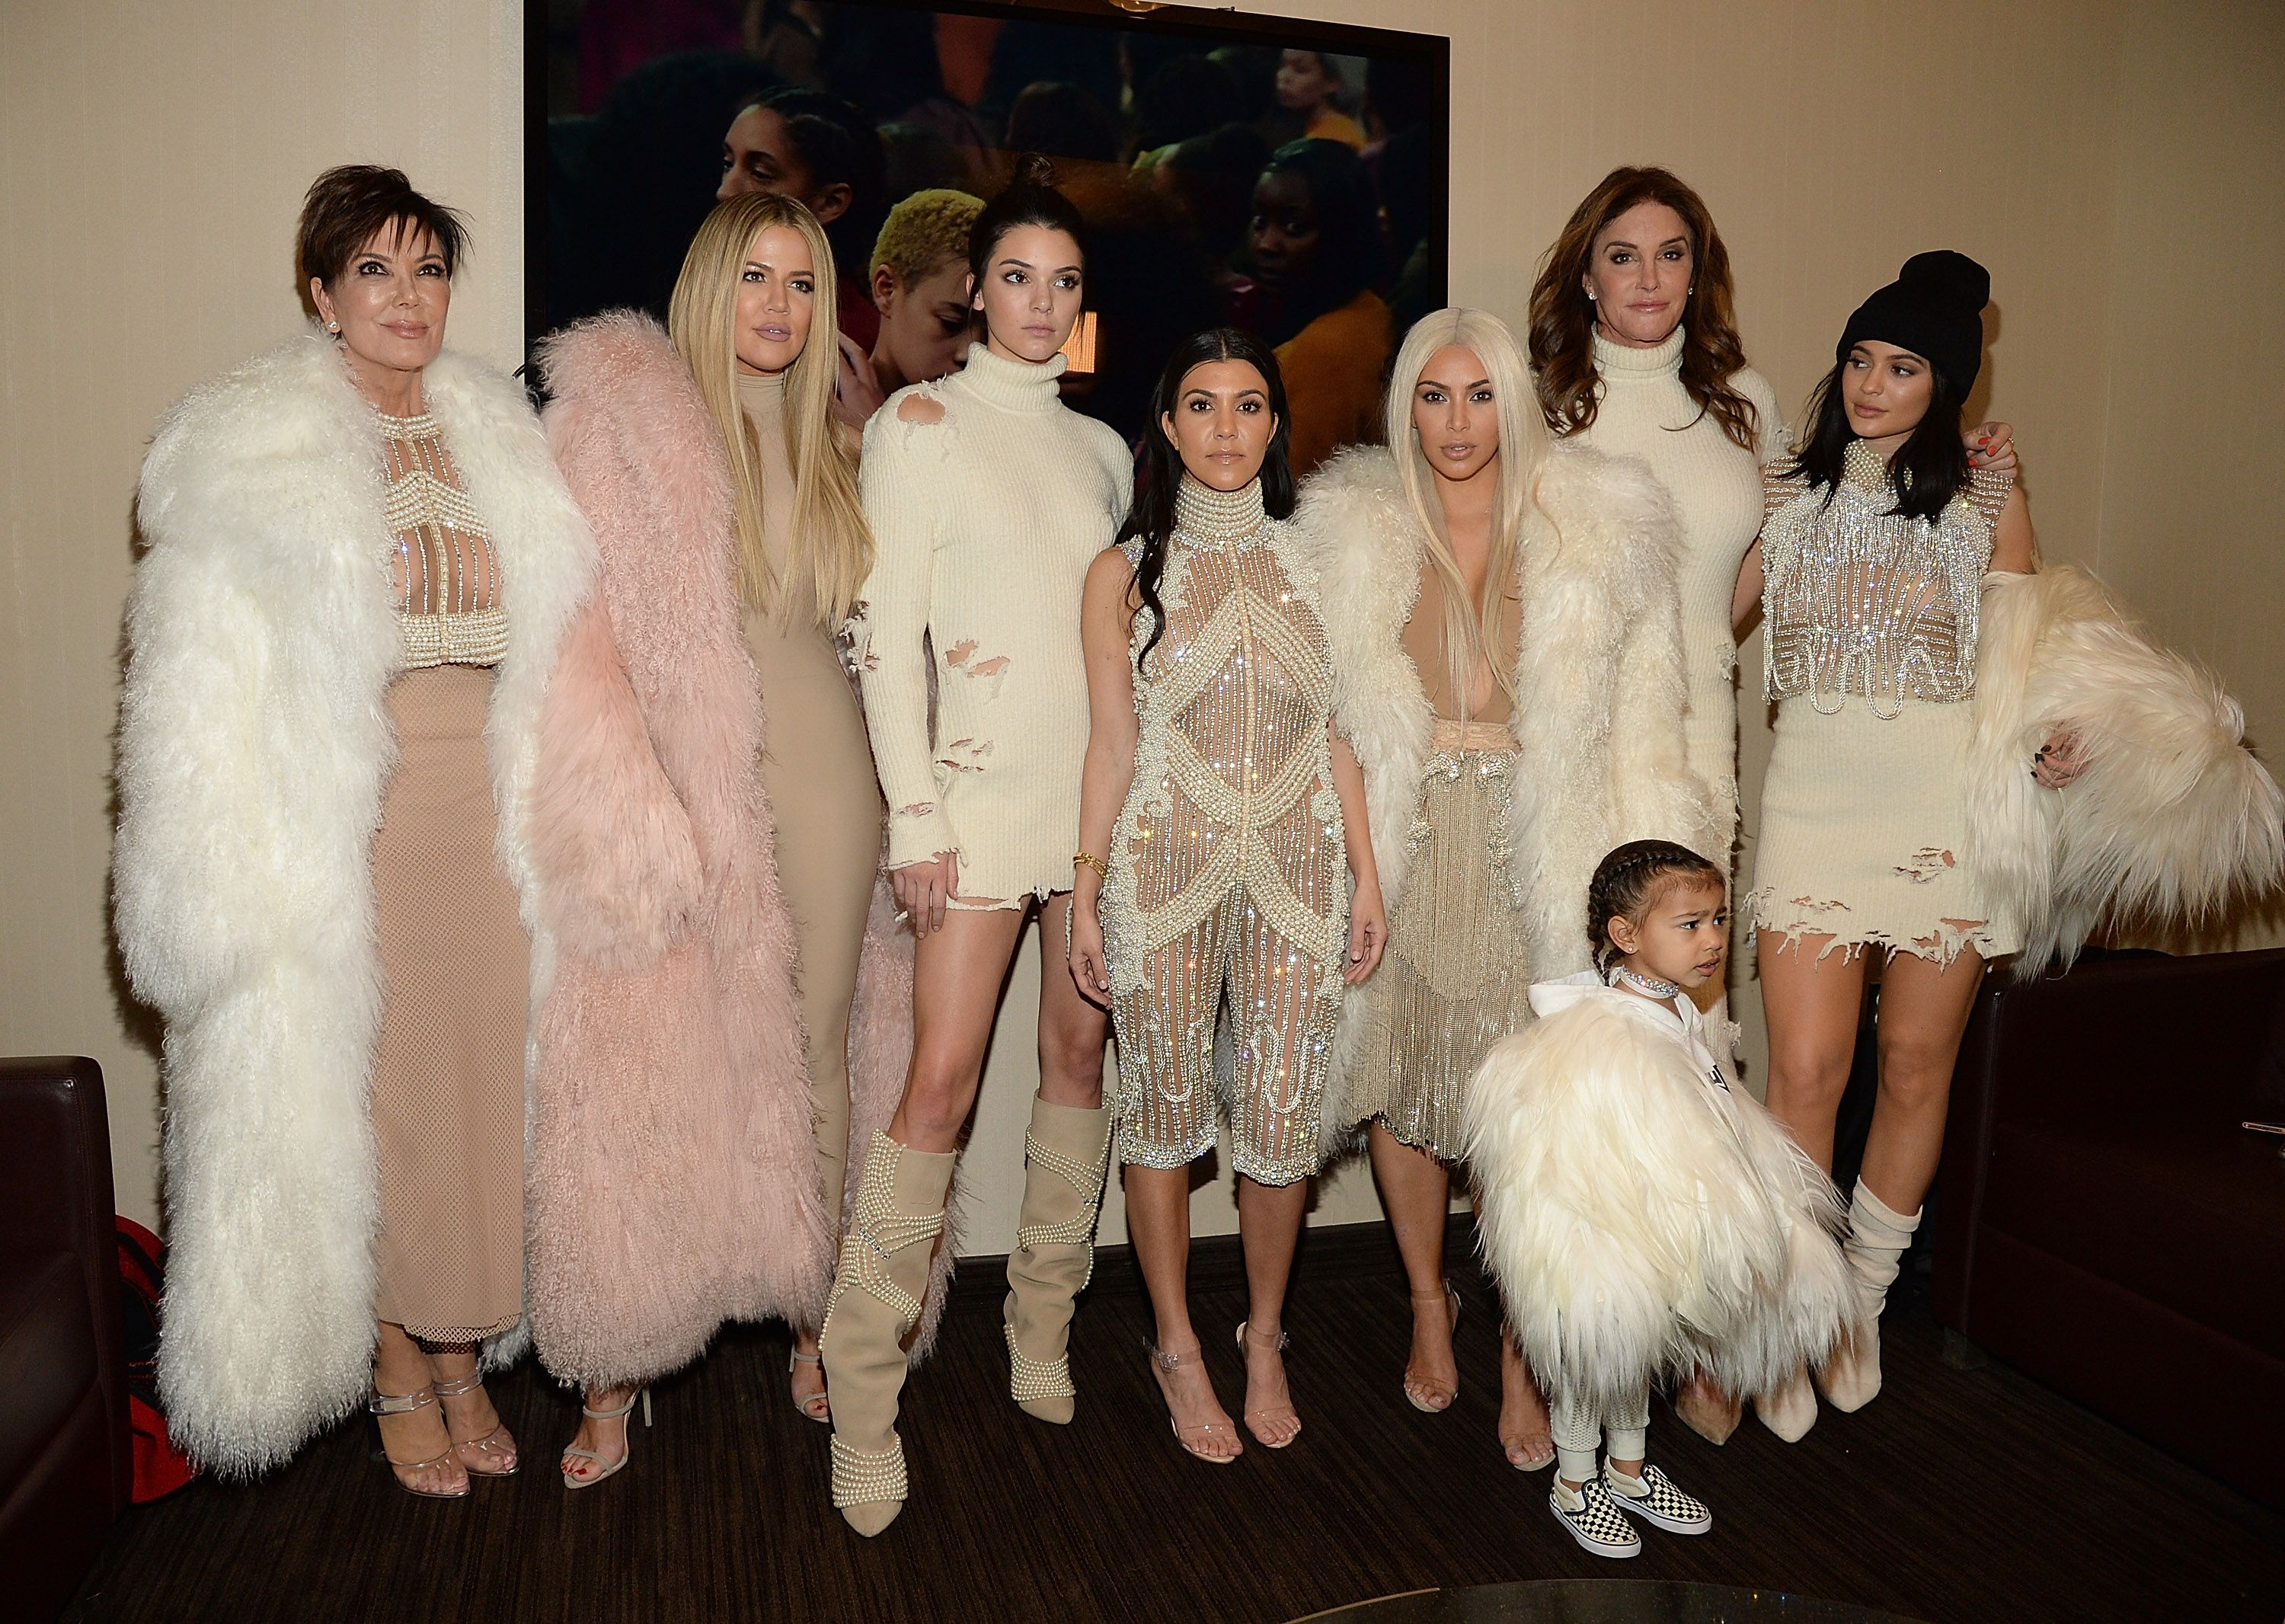 kardashian family news 2018